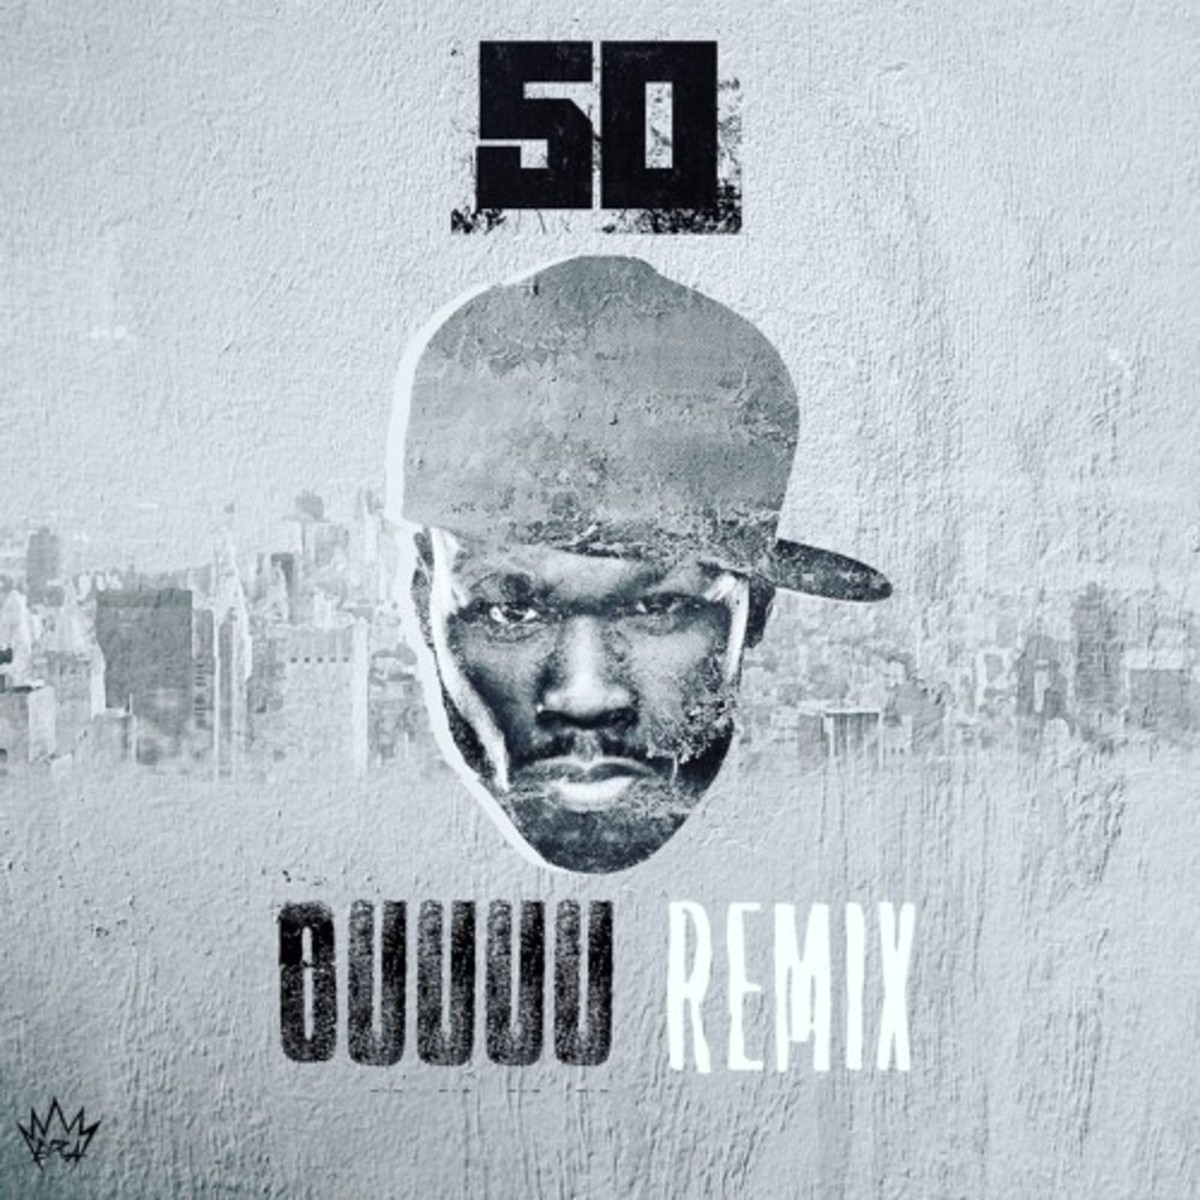 50-cent-ooouuu-remix.jpg